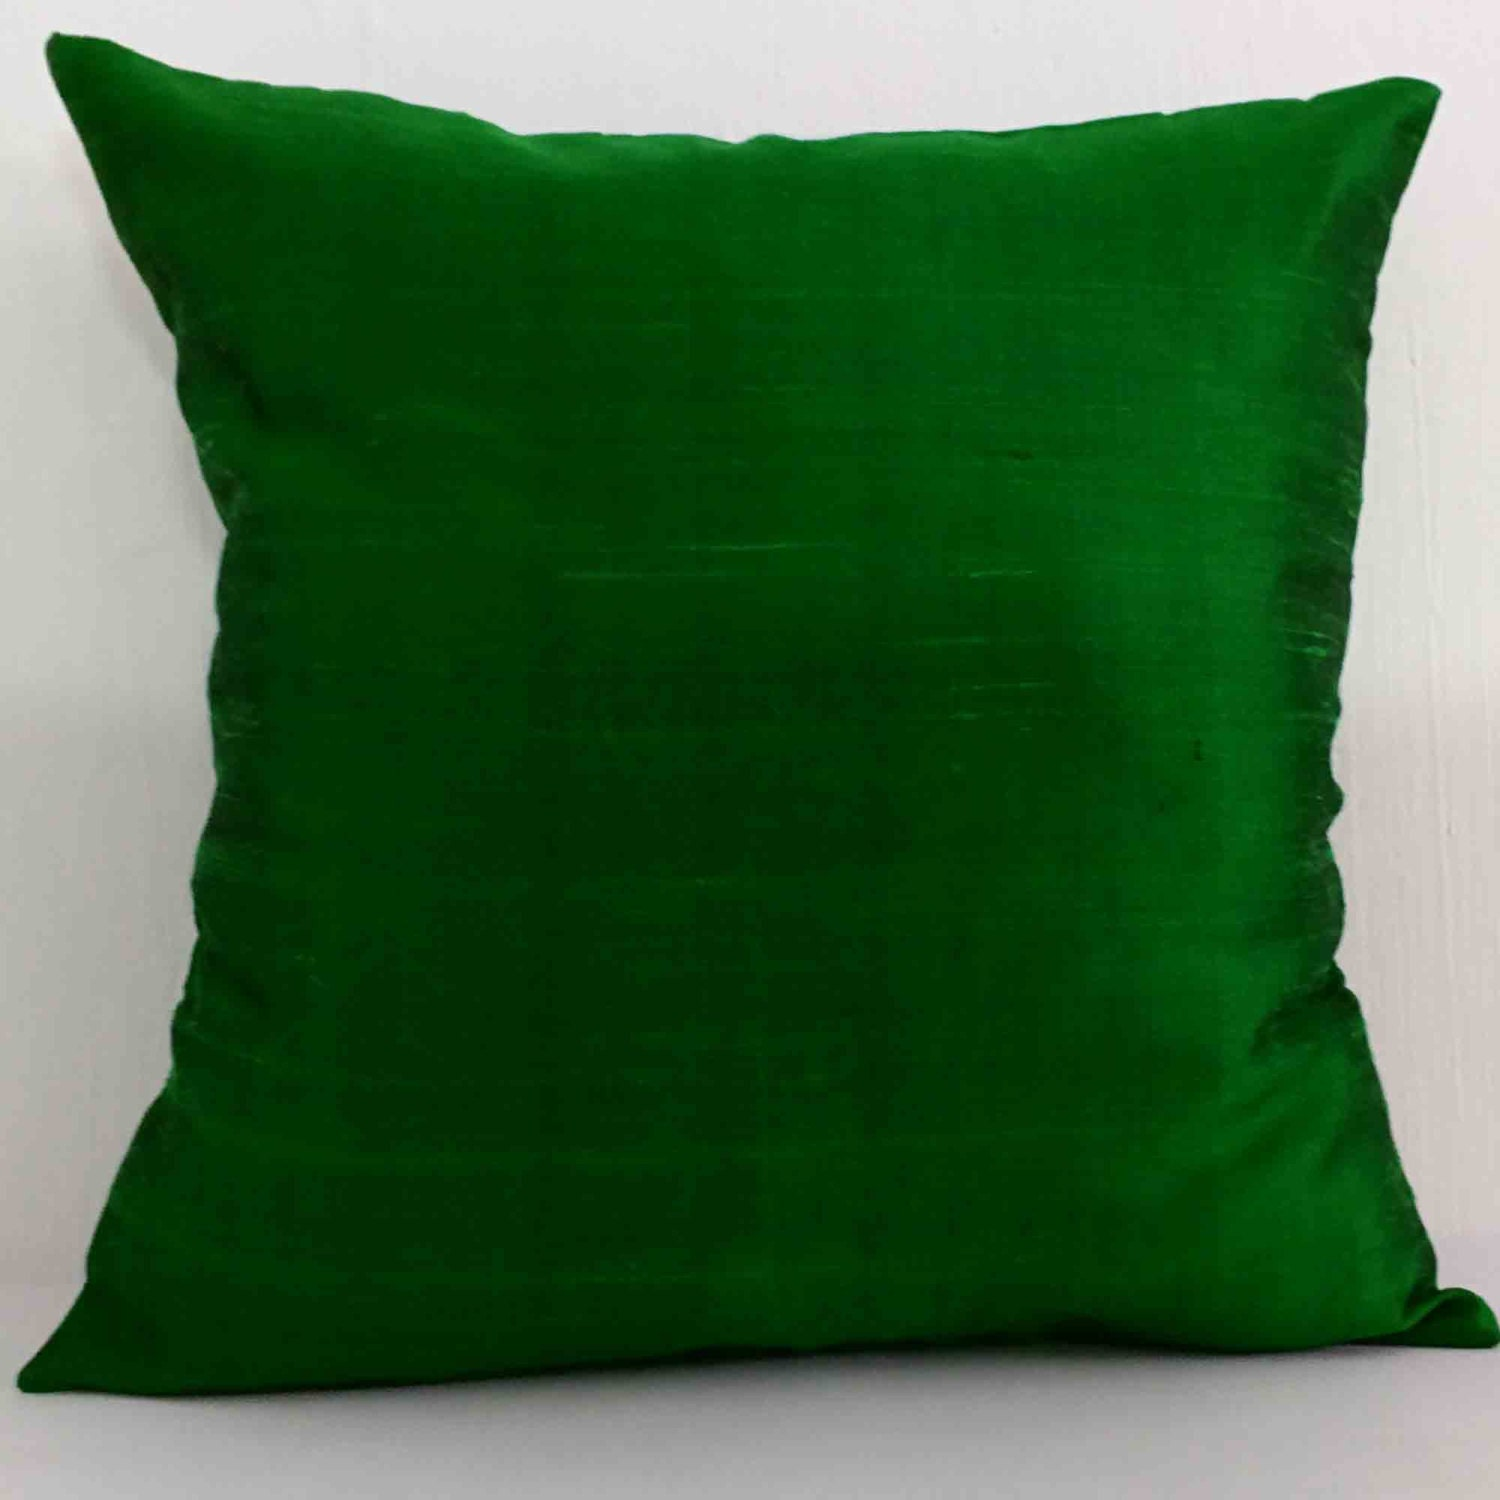 Green Silk Throw Pillow : Emerald Green Silk Pillow Cover-Emerald Green by DesiCraftShop